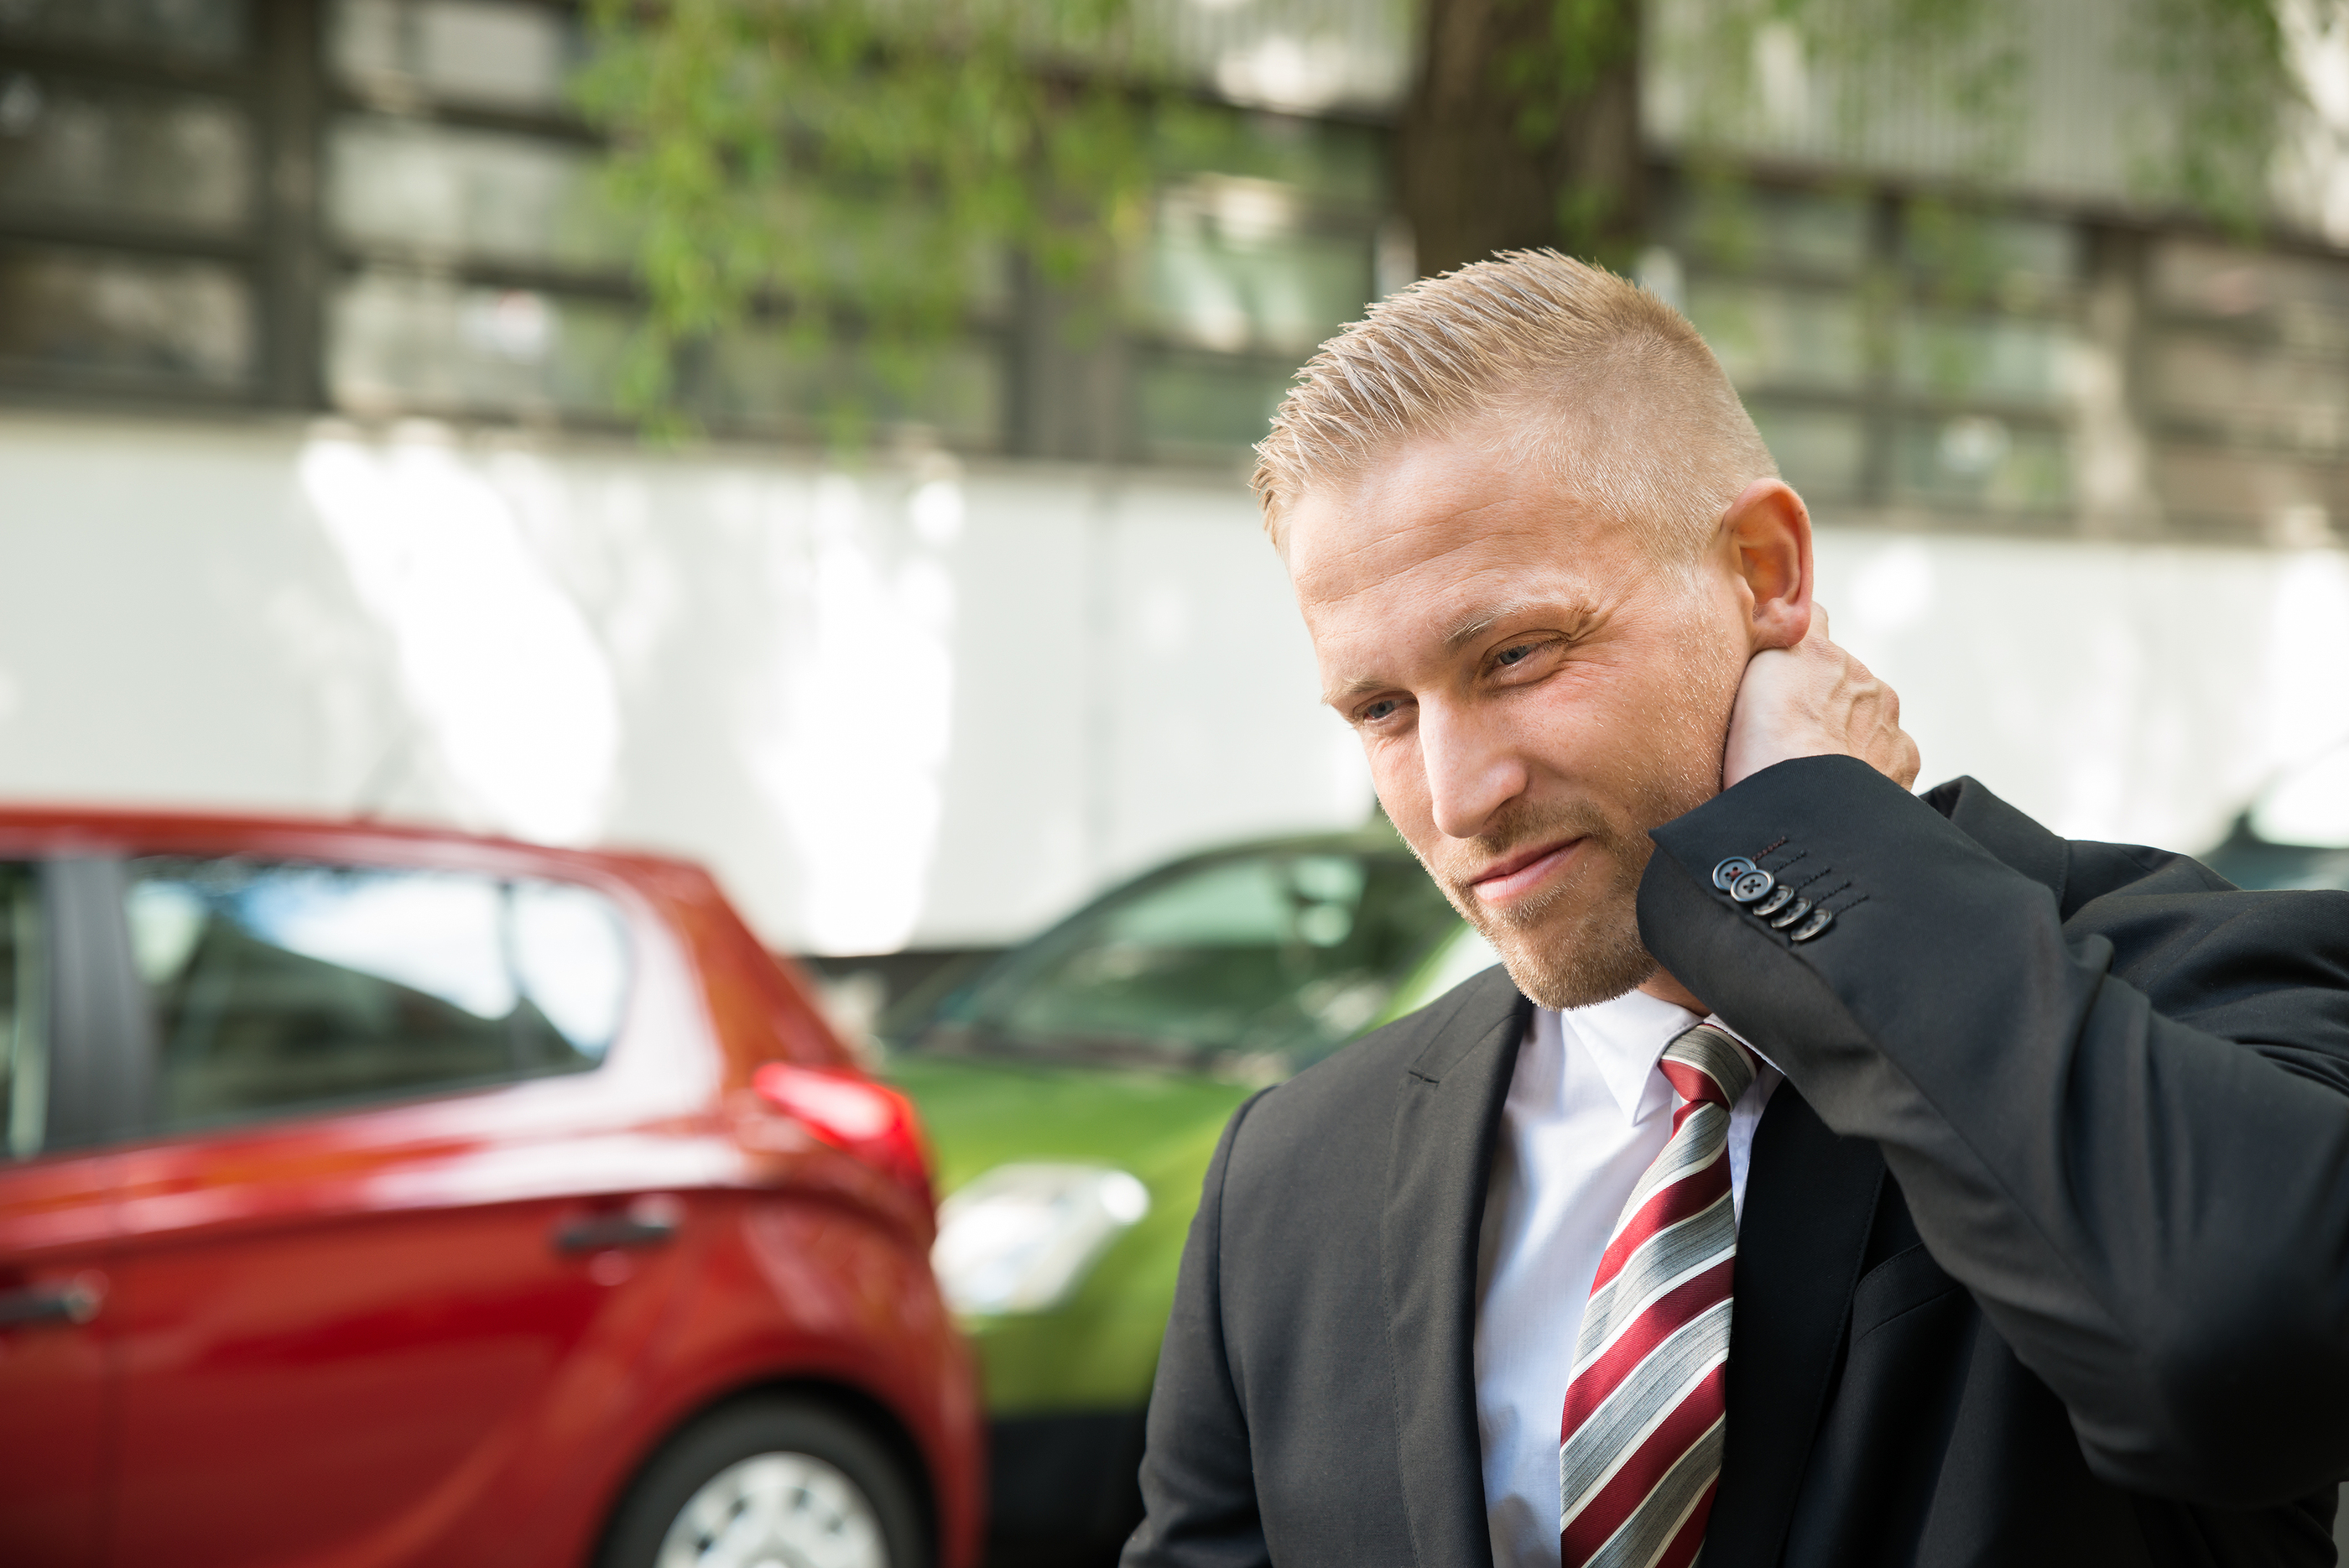 Miami Accident Center: What do you do if you've been in a car accident?